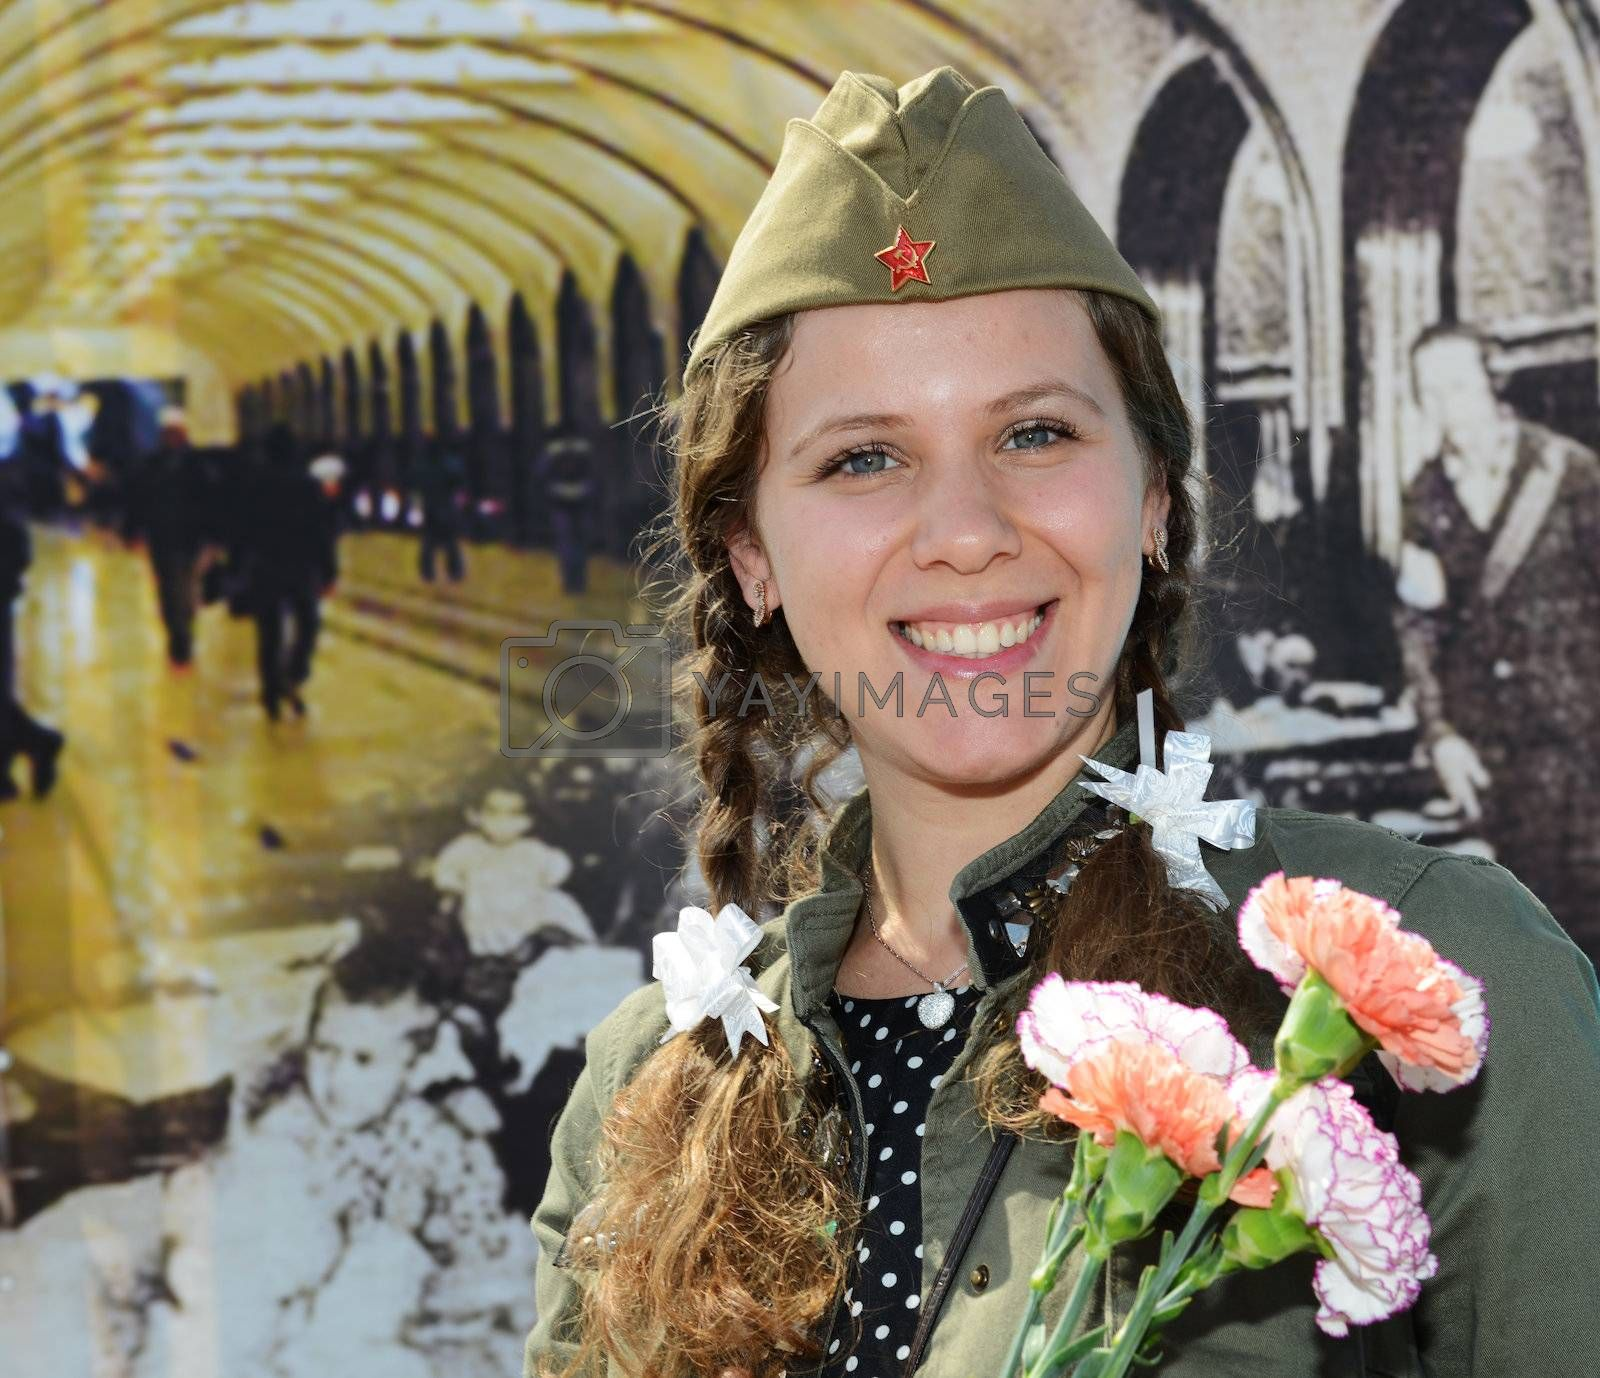 Moscow, Russia - May 9, 2013: Portrait of young girl in uniform decorated bearing bunch of flowers during festivities devoted to 68th anniversary of Victory Day